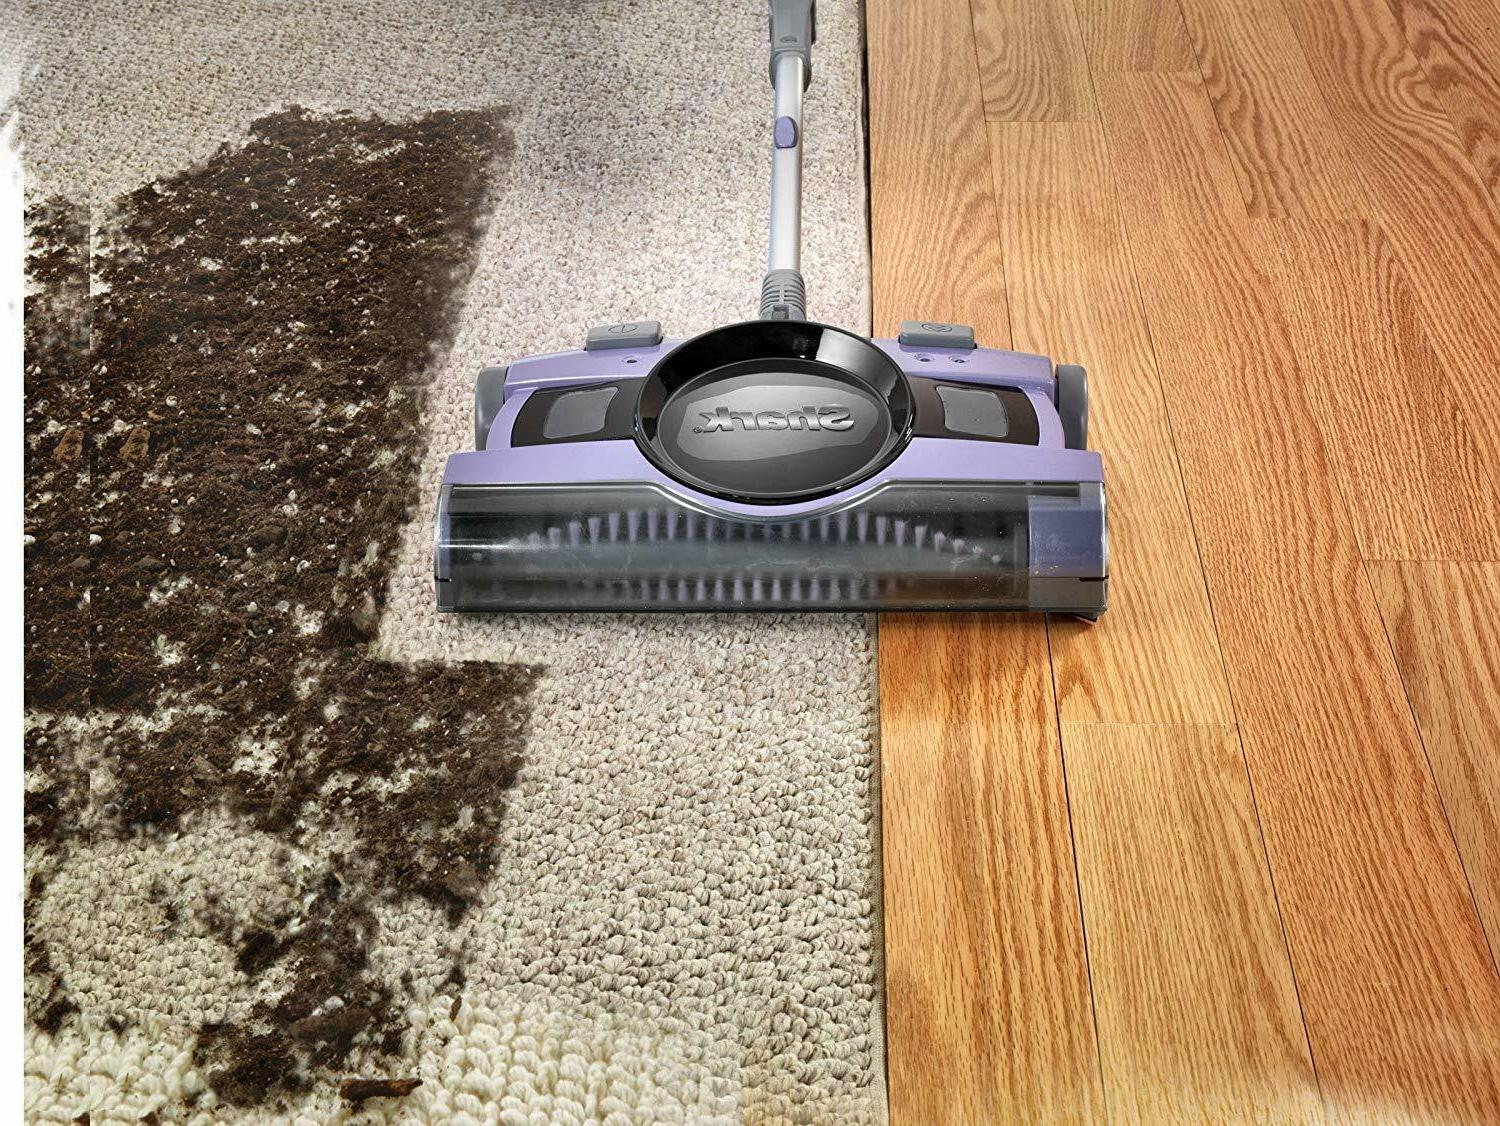 Shark V2950 Cordless Rechargeable Vacuum